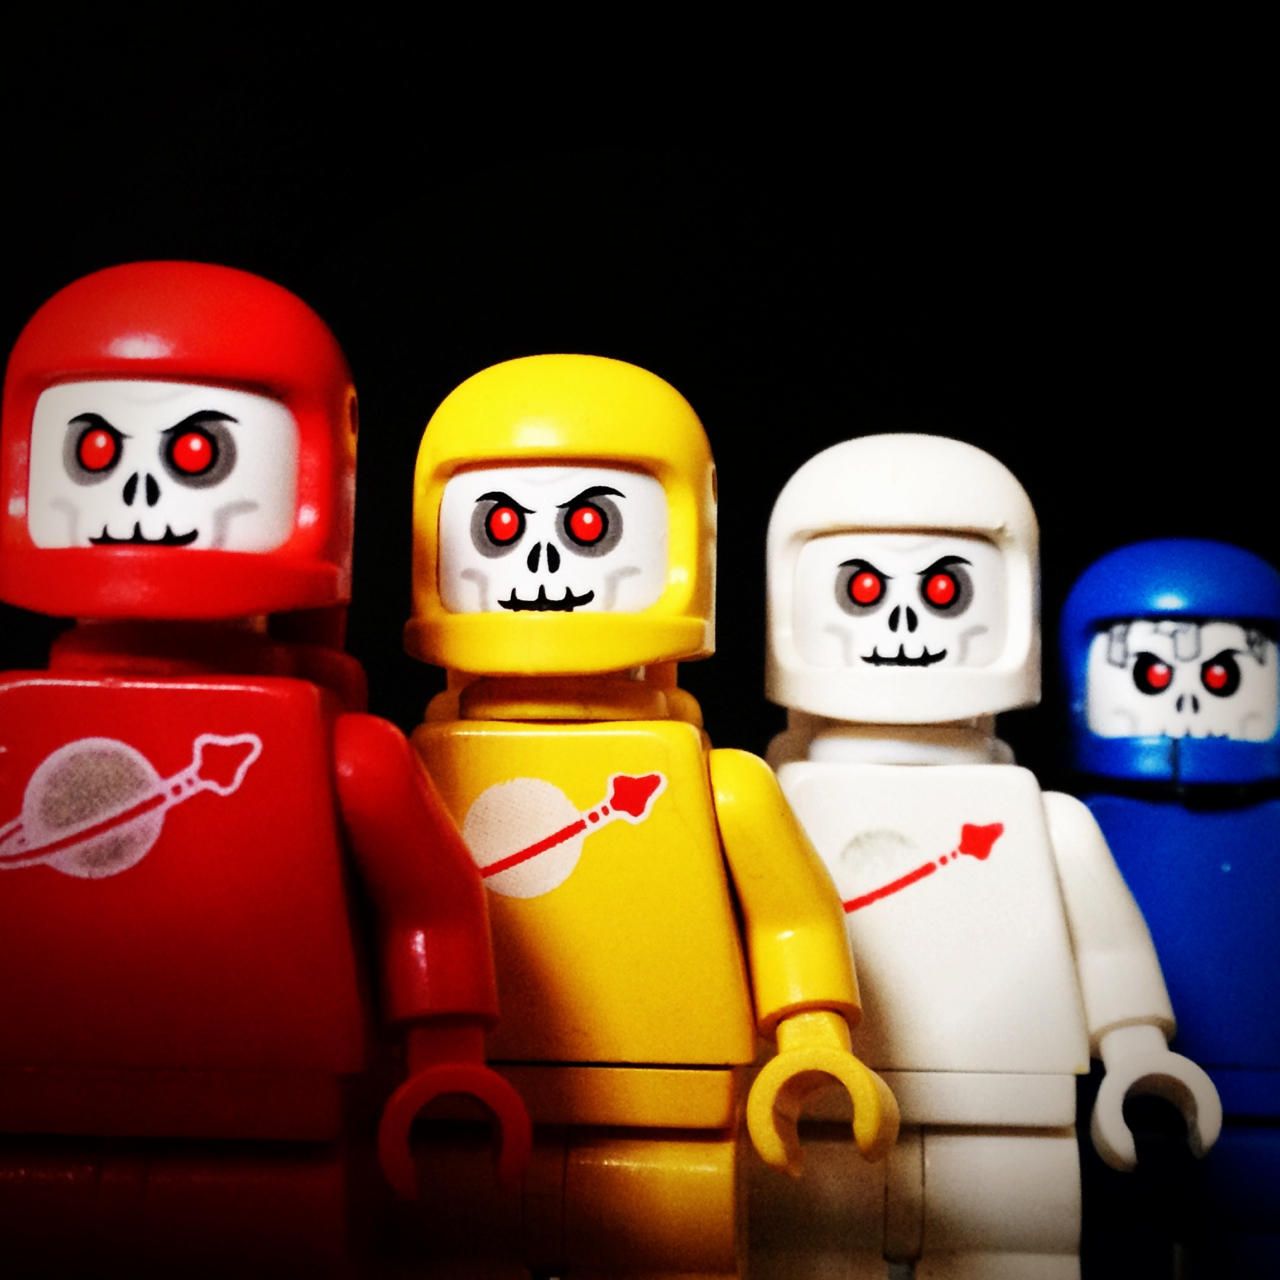 LegoGenre 00226: There Is No Cure For Space Madness.